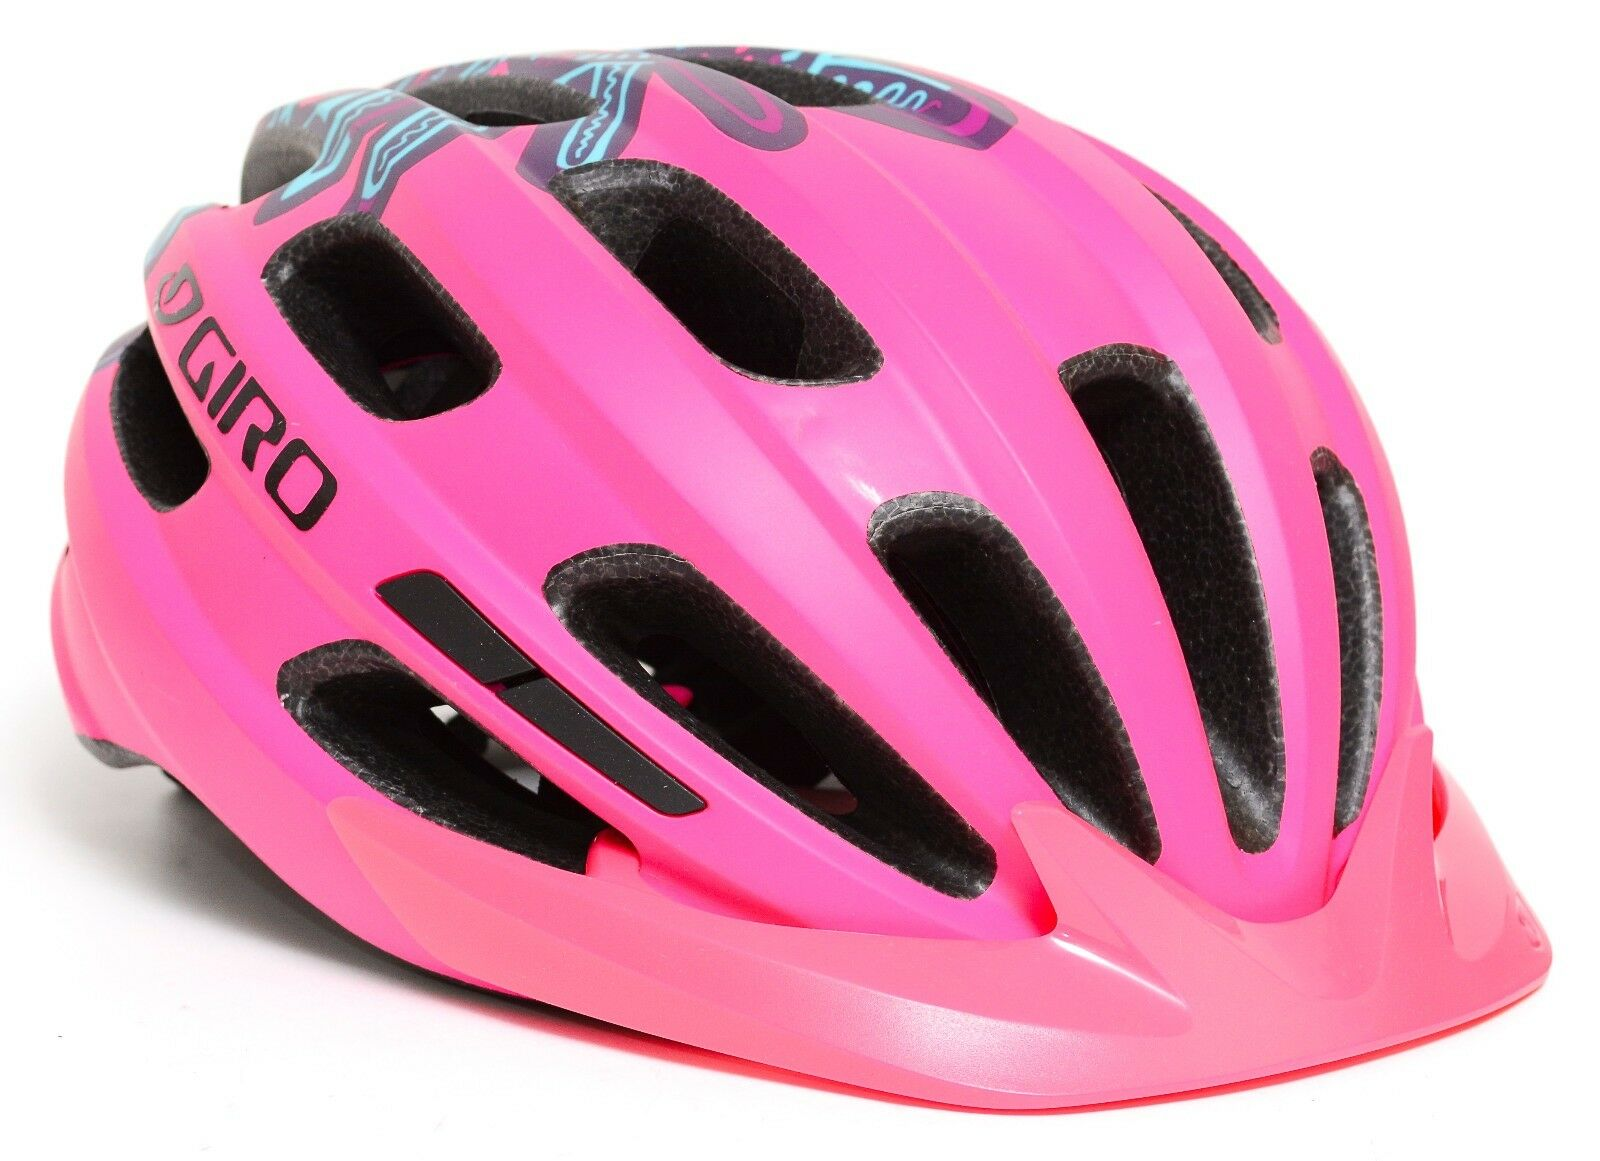 Giro Youth Hale Road Mountain Bike Helmet Visor Universal Fit 50-57cm Pink Green